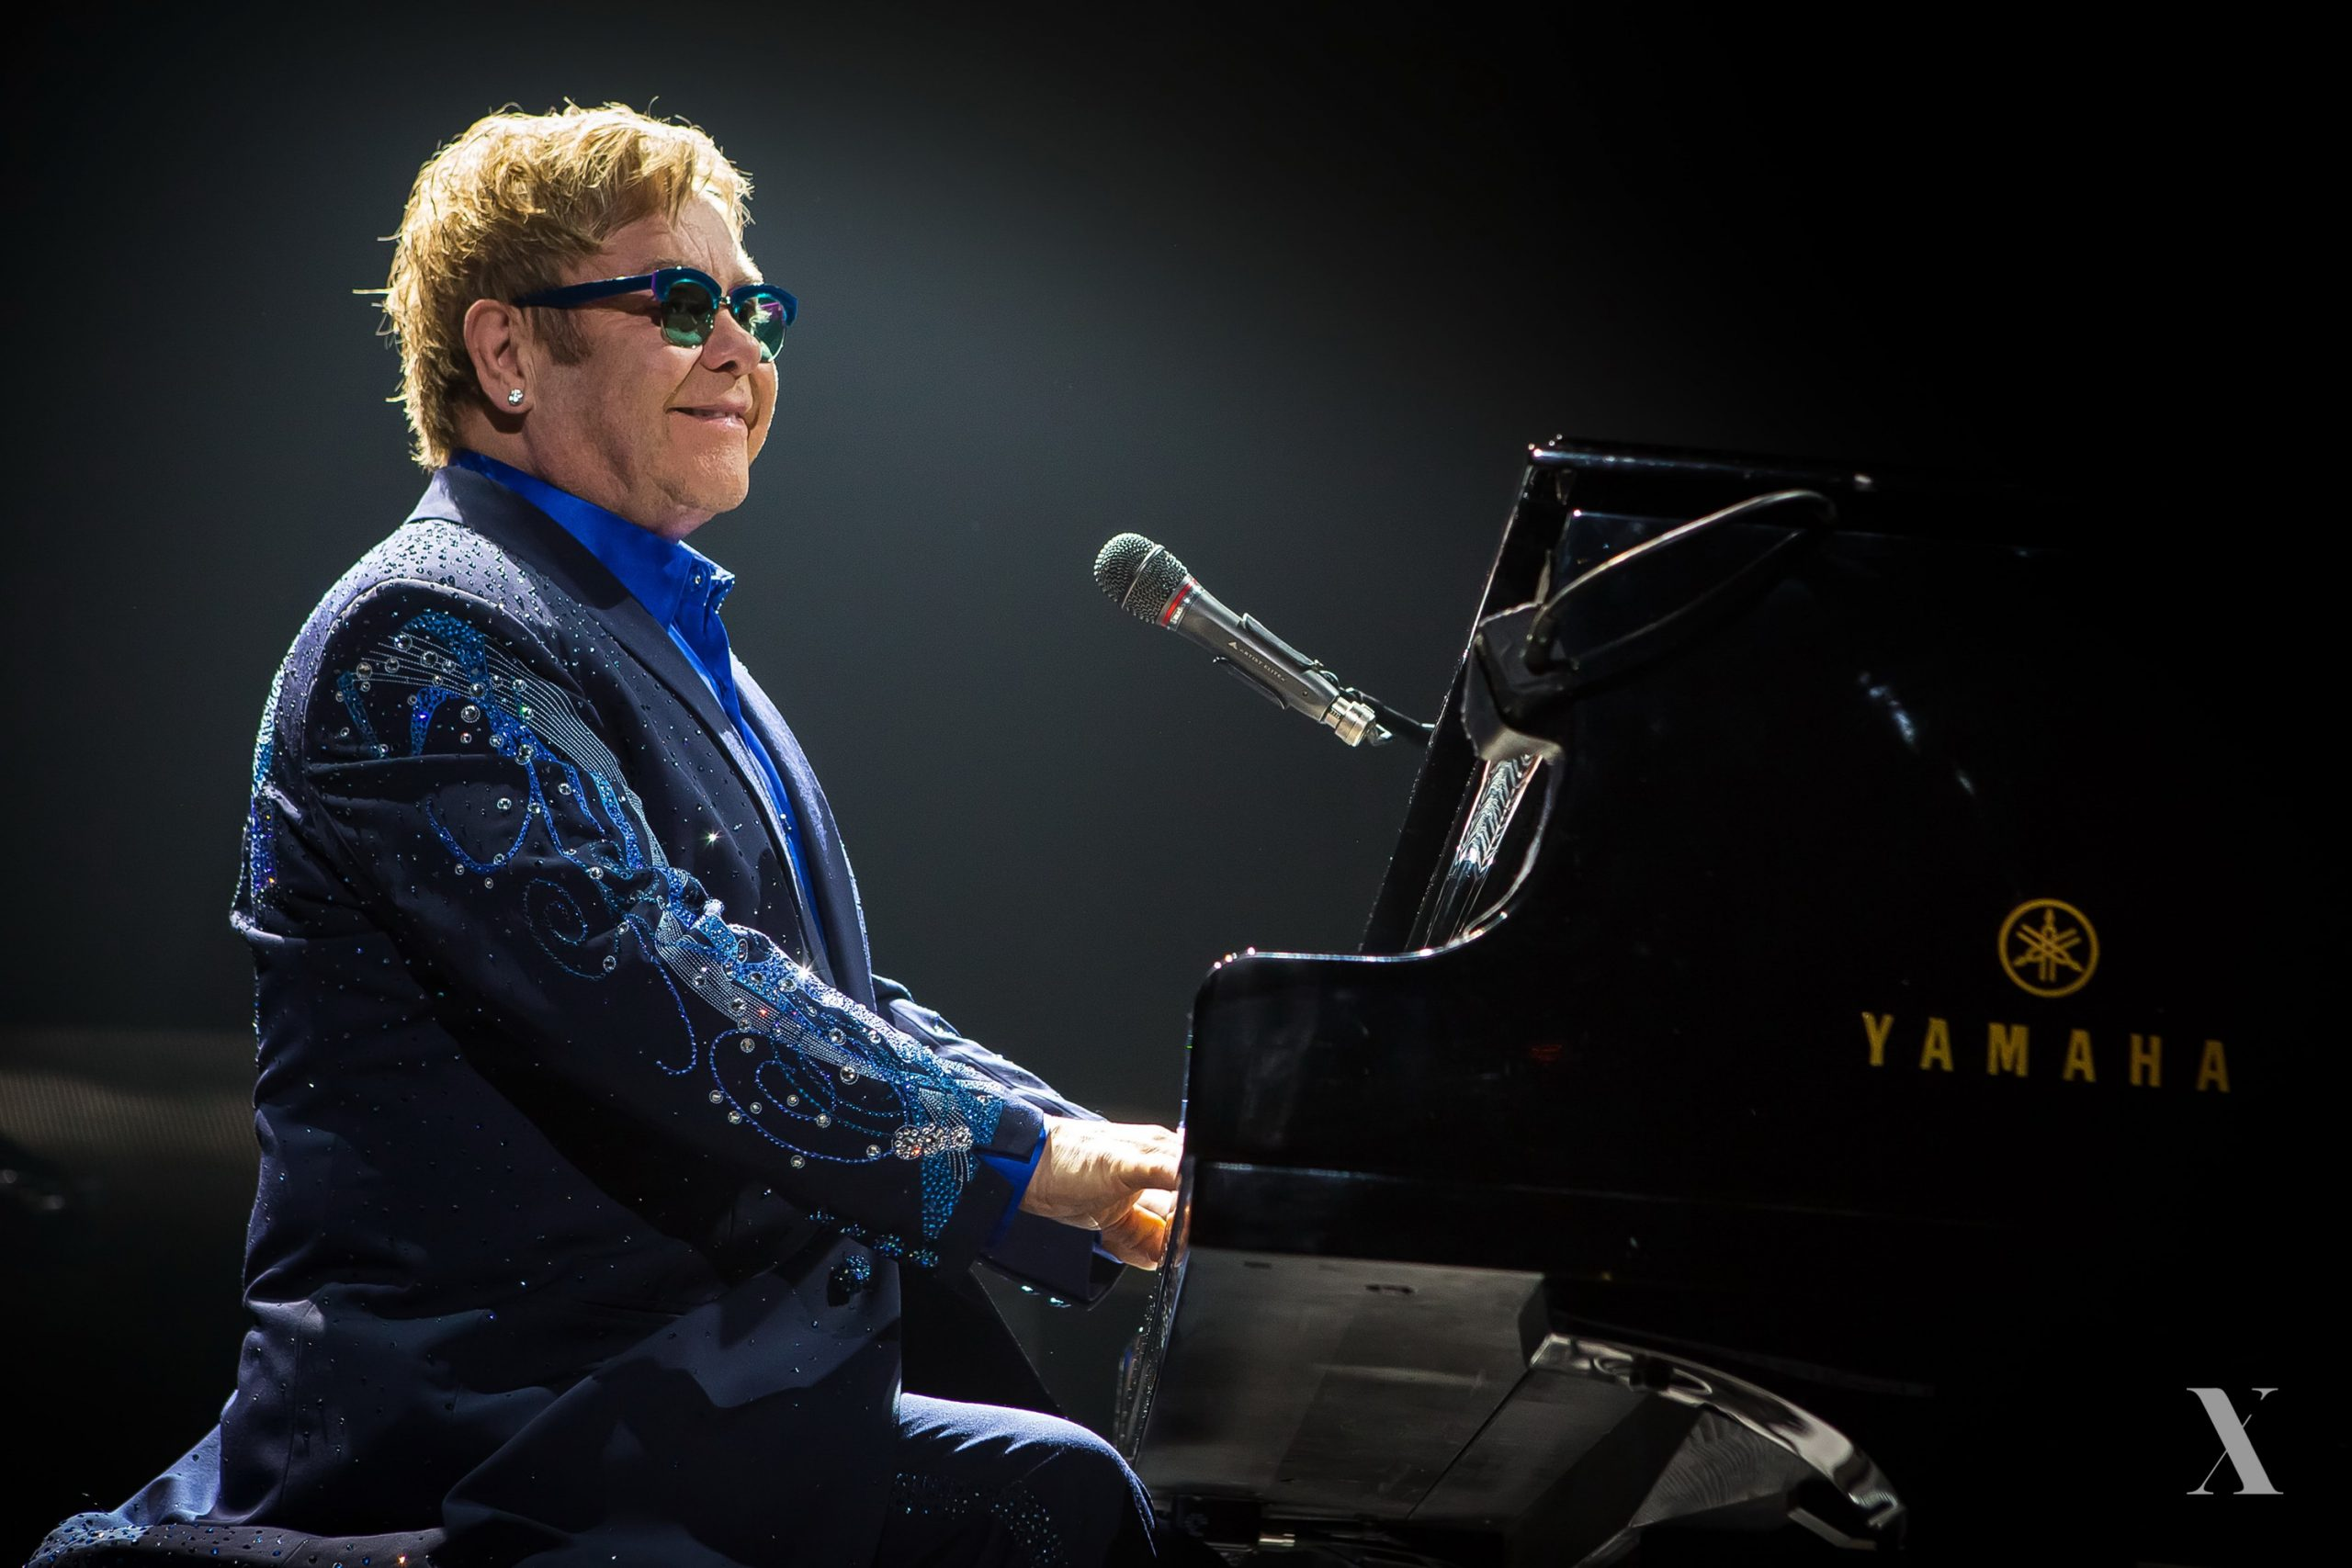 Book Elton John for a Private Party | X Music Agency